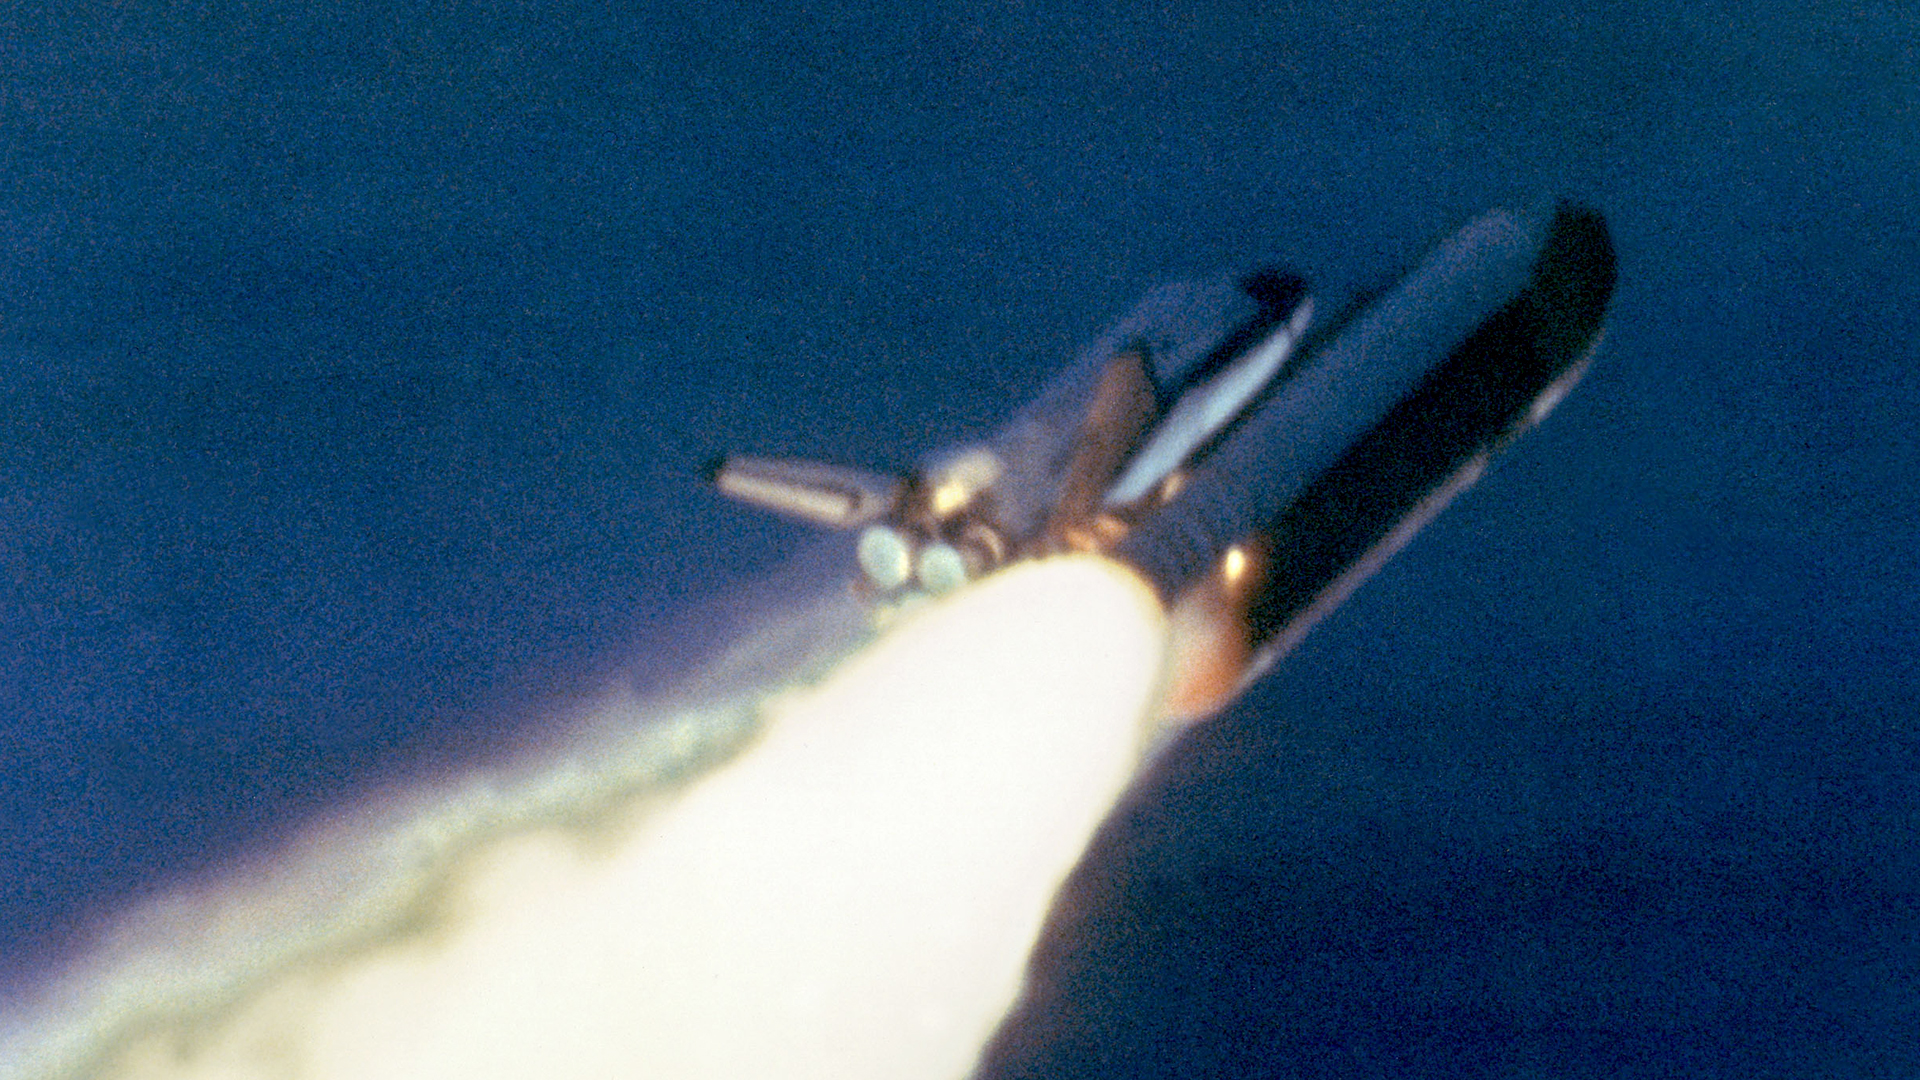 Space Shuttle Challenger Disaster Nbc News